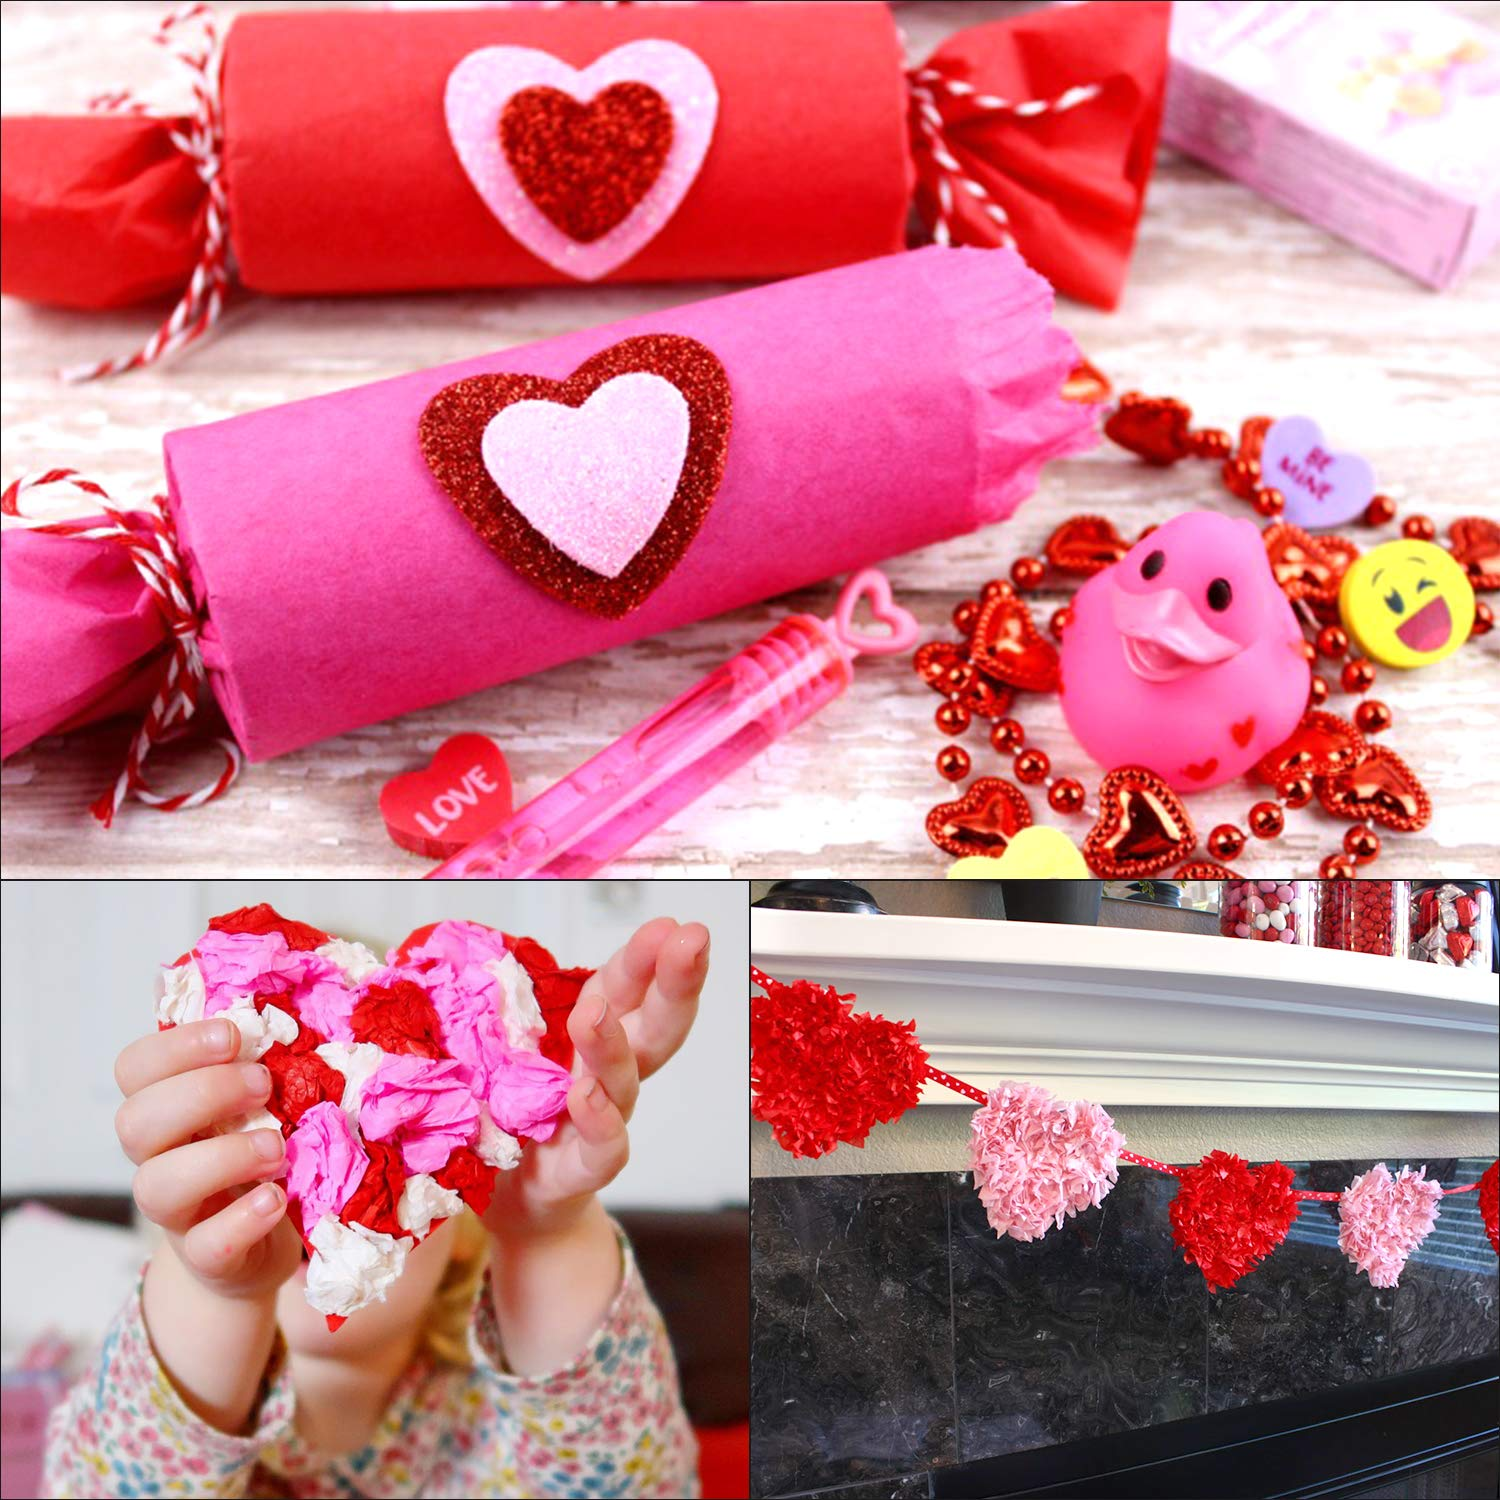 FEPITO 60 Sheets Valentines Day Multicolor Tissue Paper with A Roll of Valentine Hearts Ribbon Bulk Wrapping Tissue Paper 20 x 26 for Art Craft Floral DIY Valentine Party Decorations Supplies